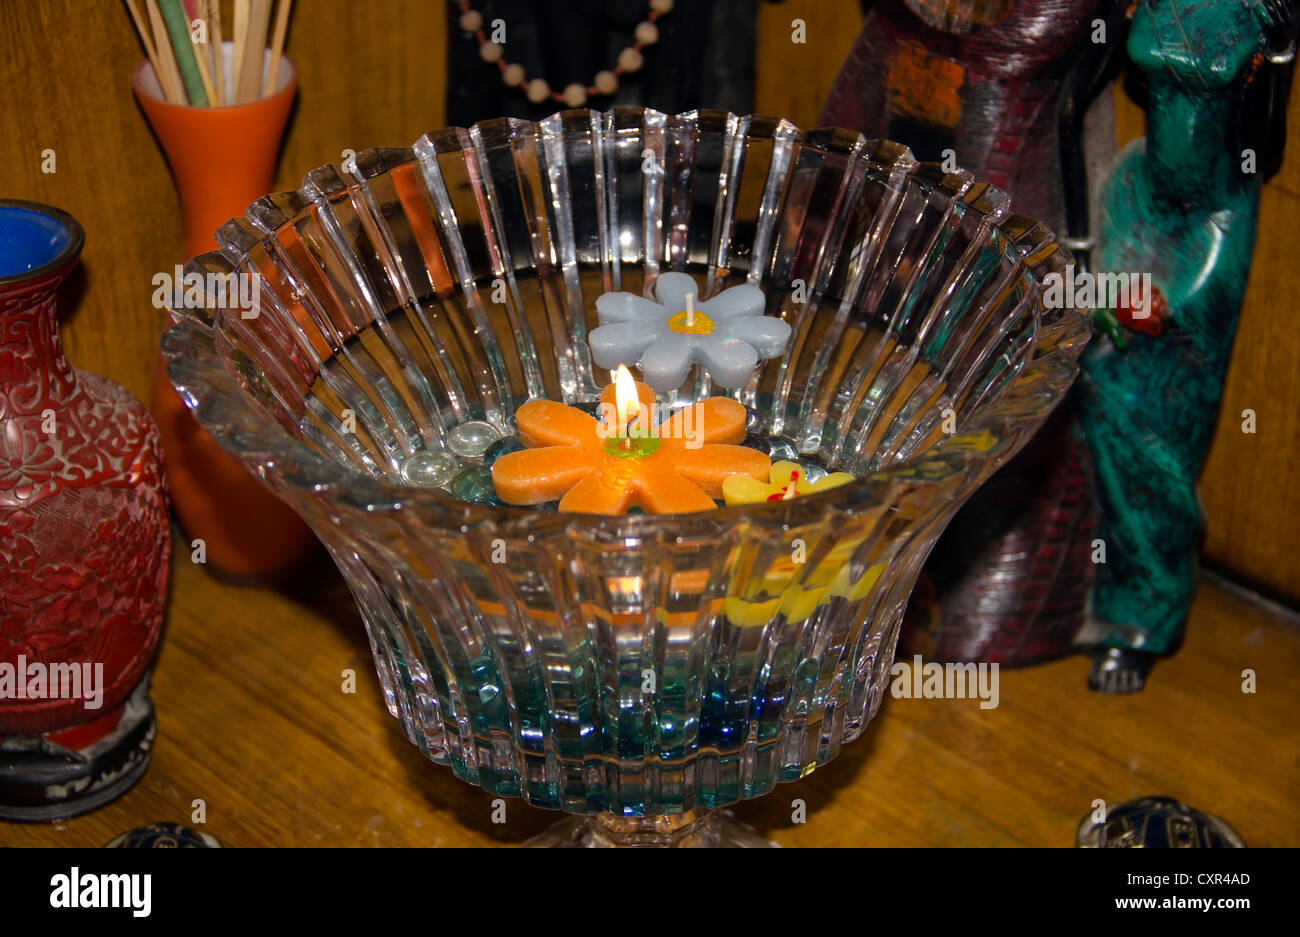 Floating Candles Of Different Colors In A Glass Bowl This Was Part